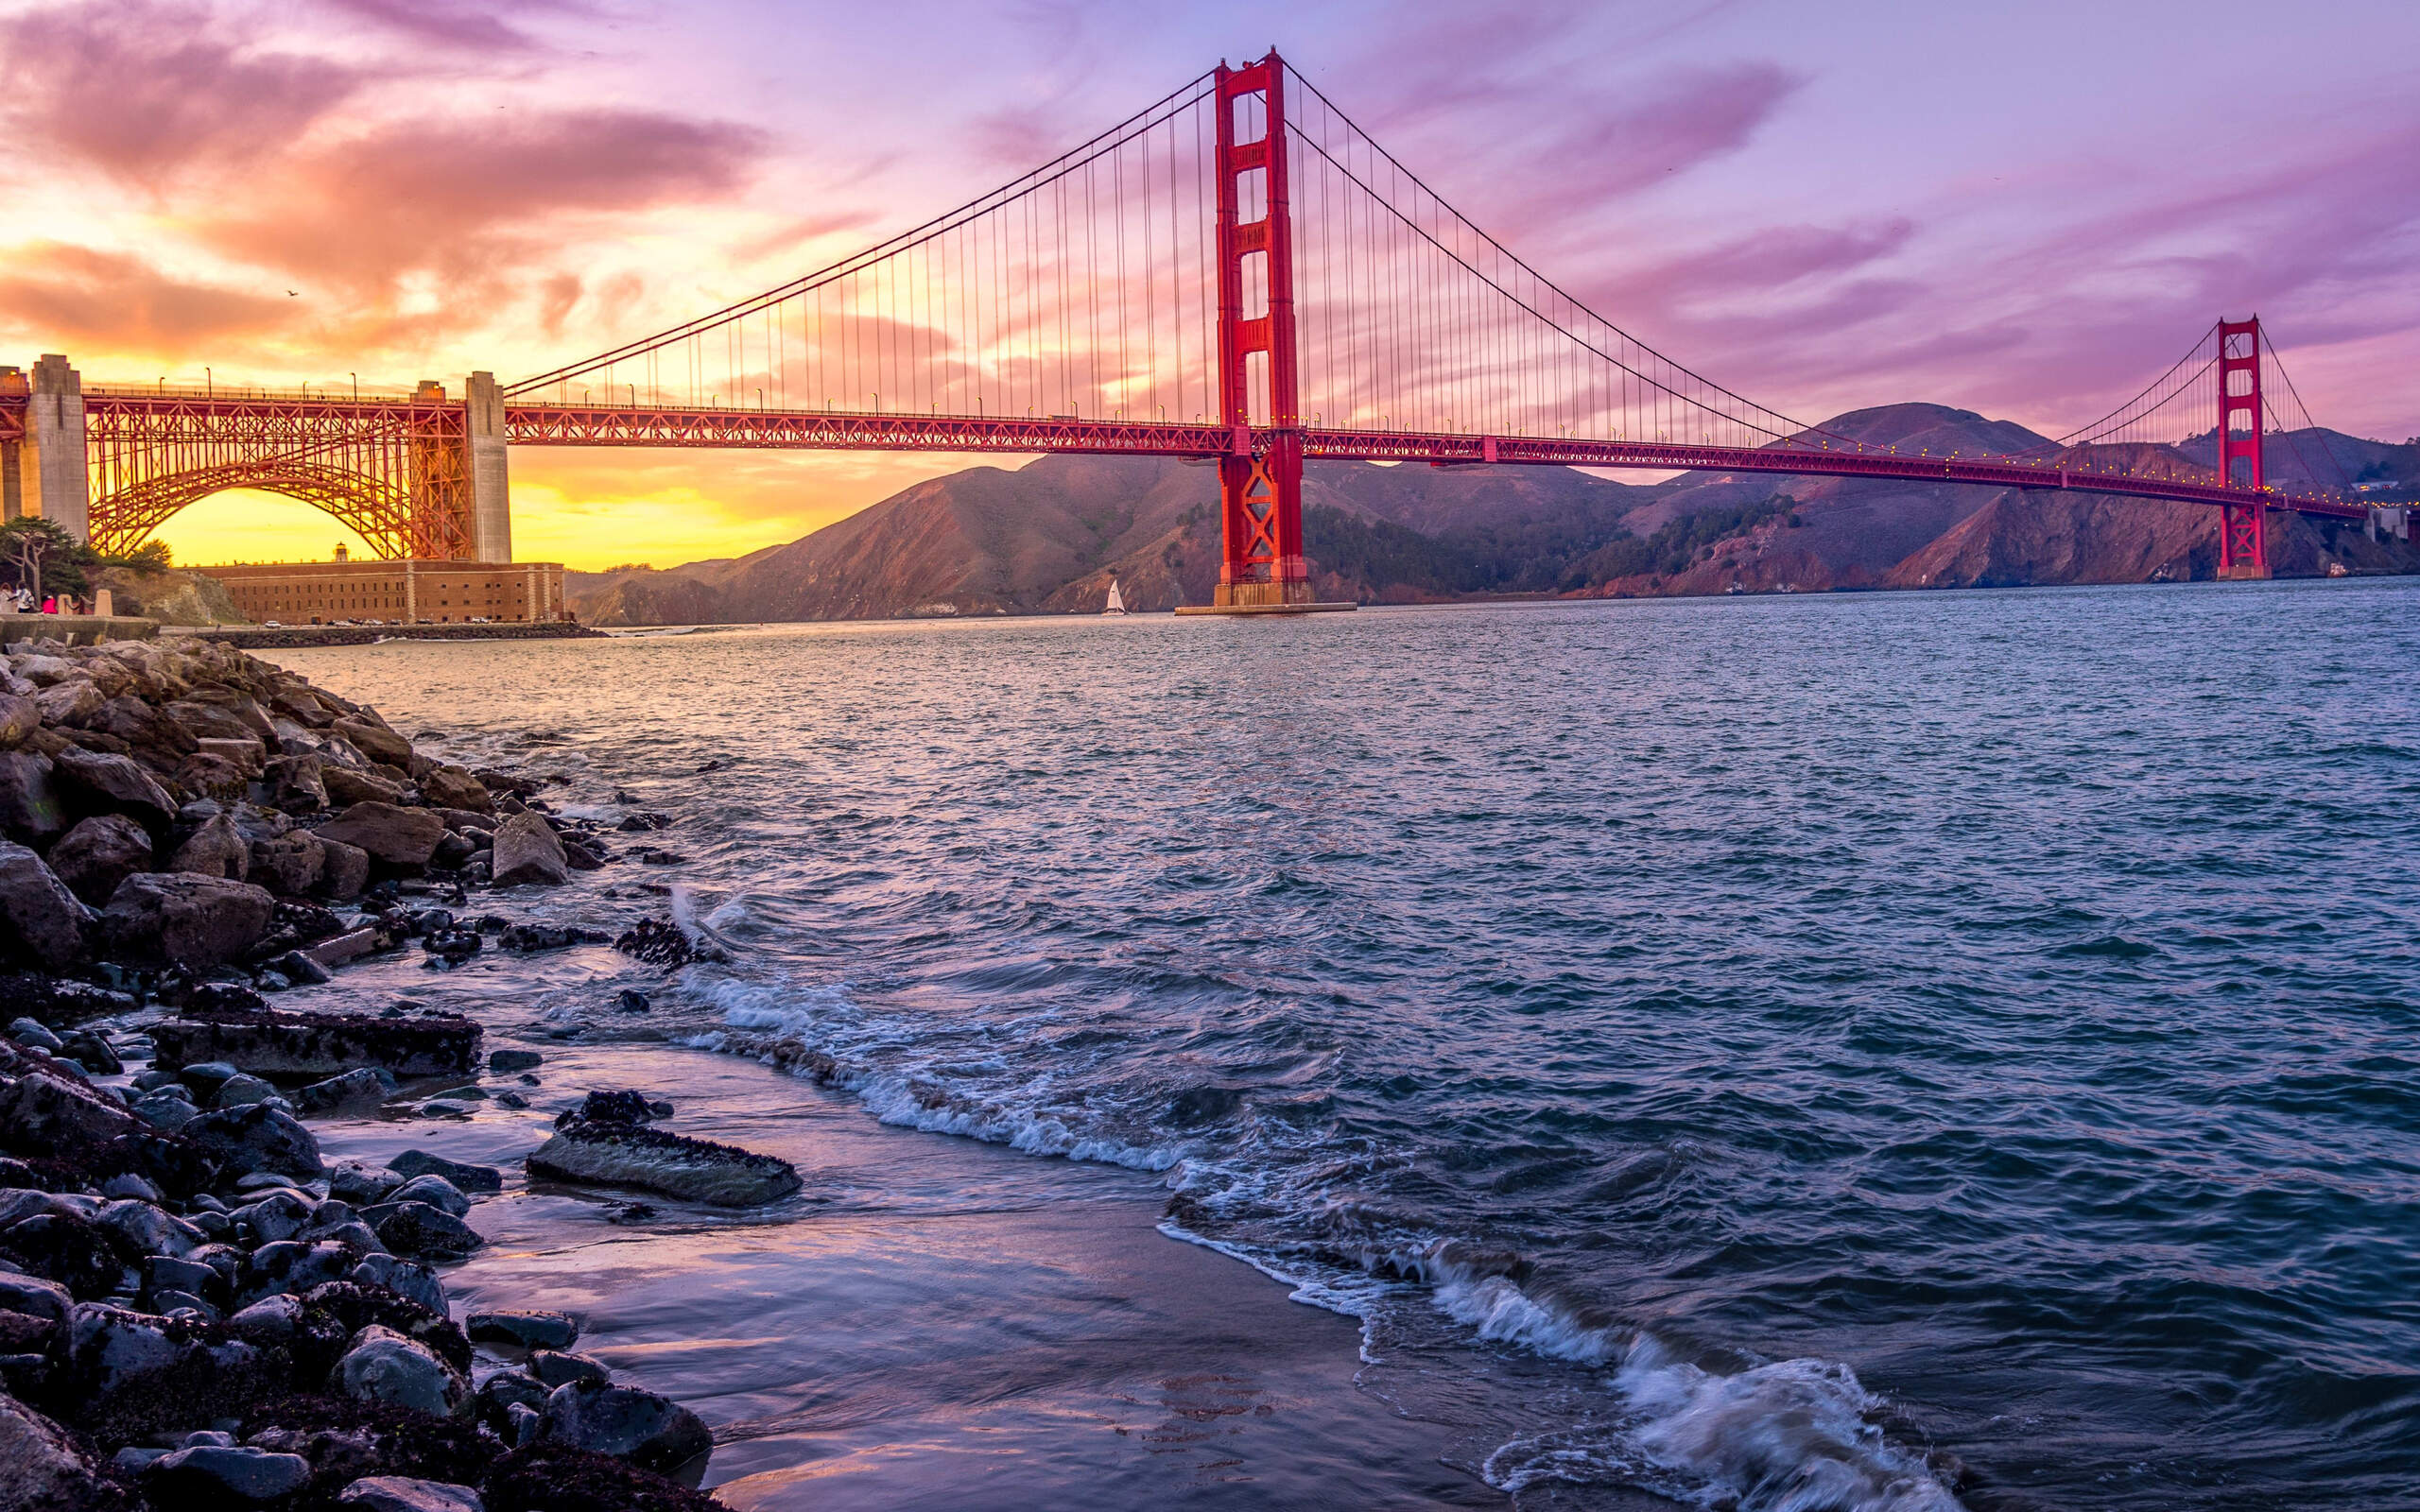 golden-gate-bridge-us-5k-2019-ac.jpg